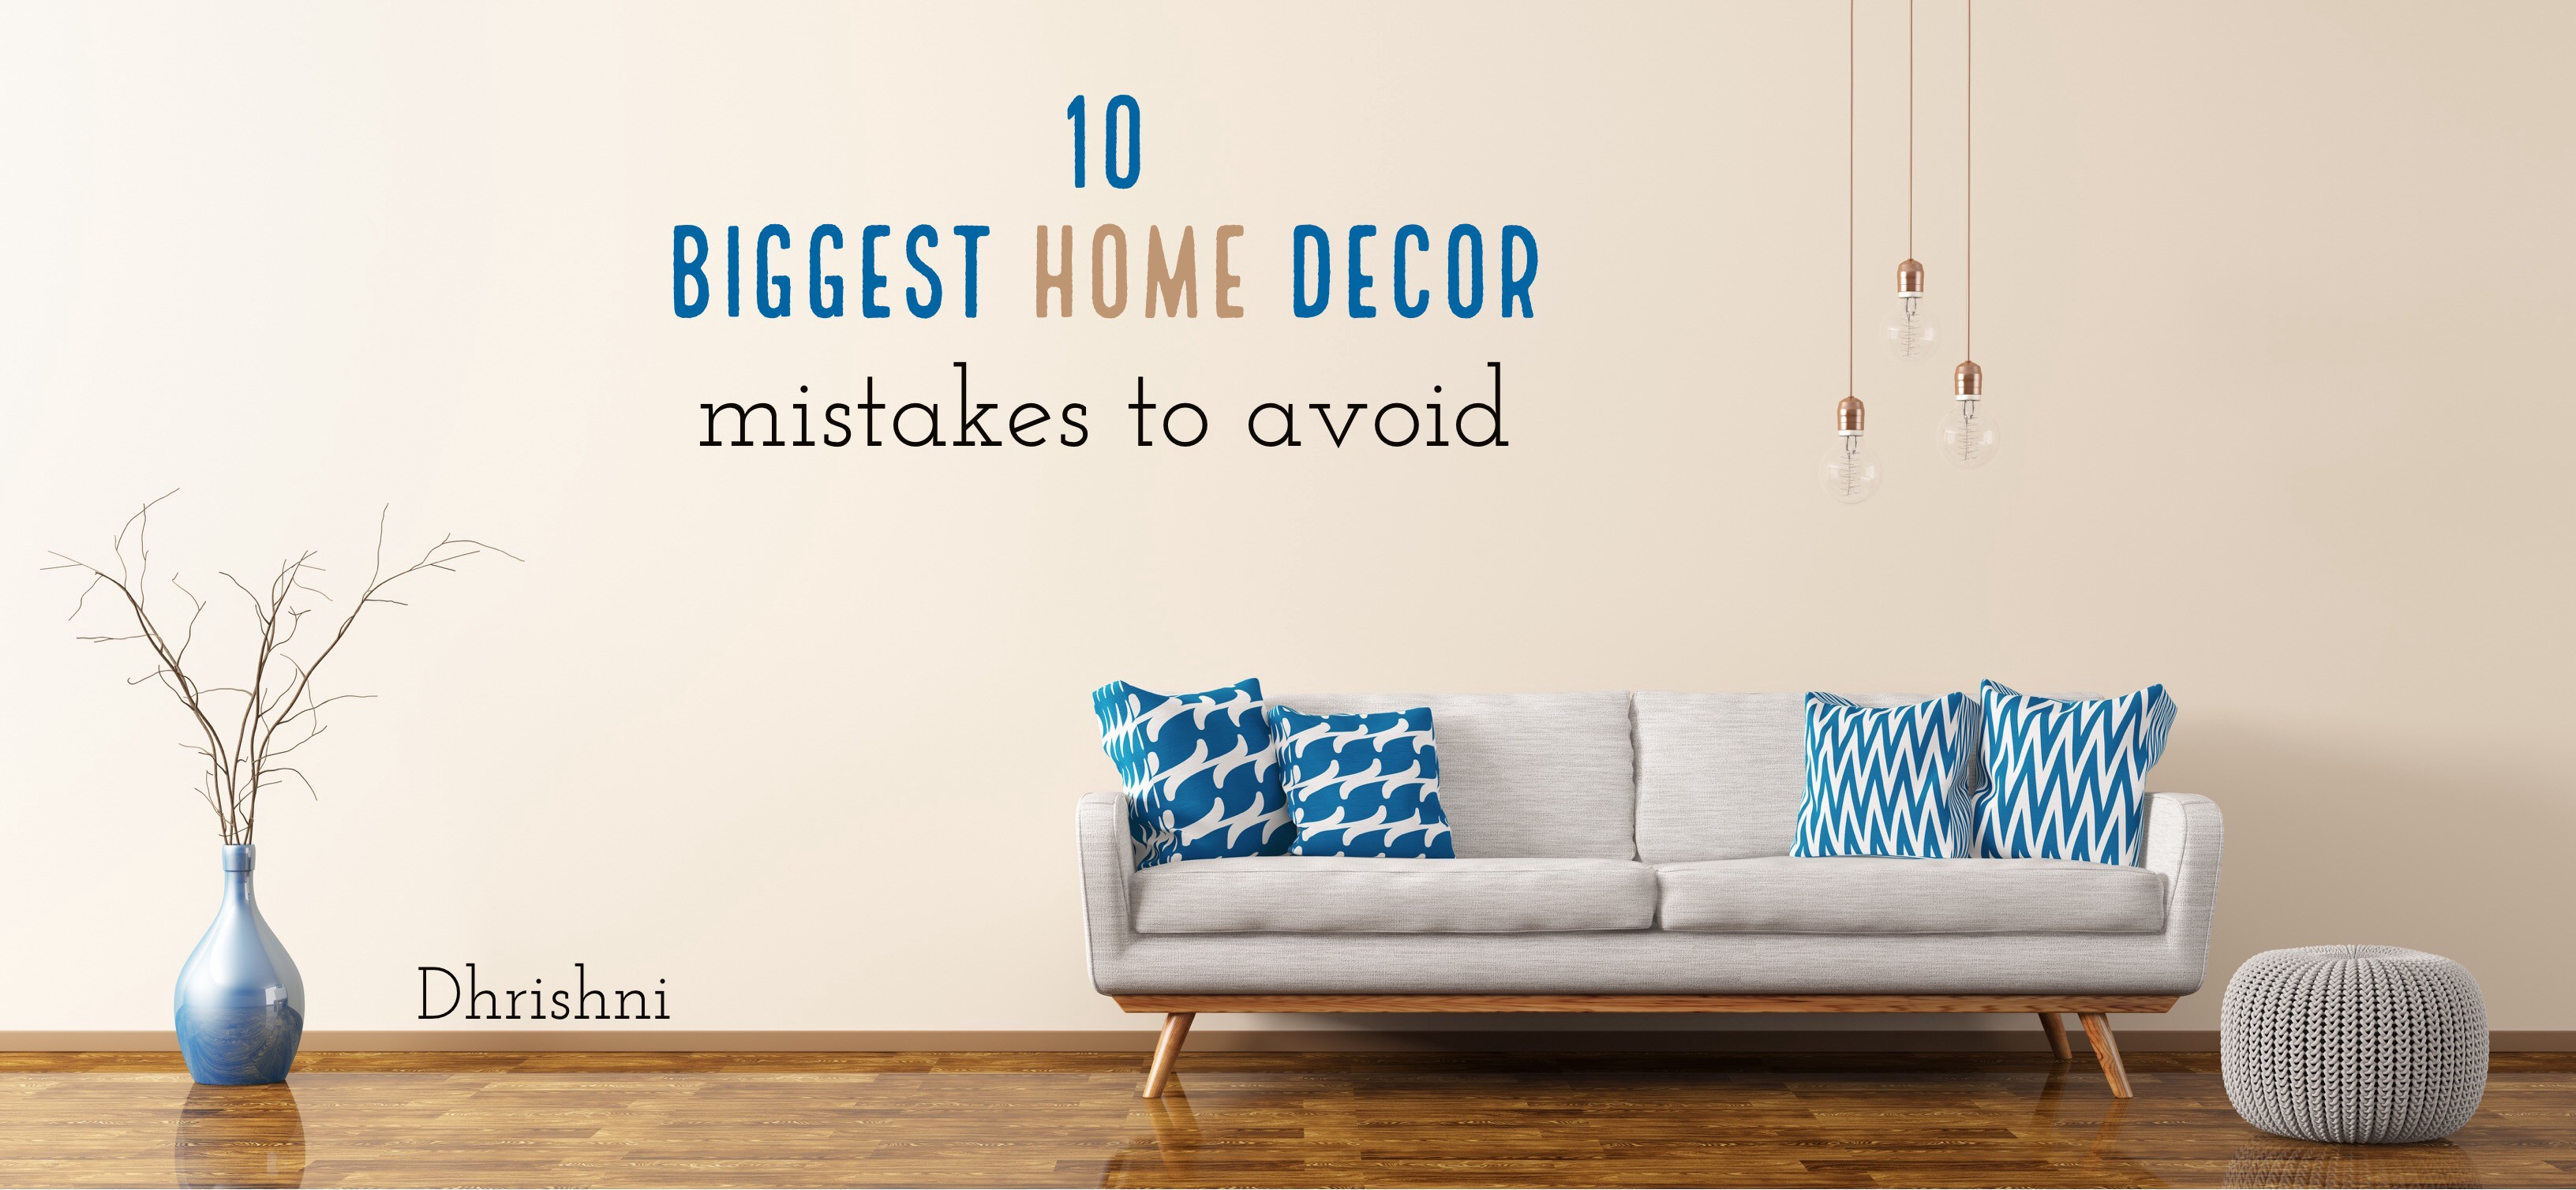 10 Gest Home Decor Mistakes To Avoid And Their Solutions